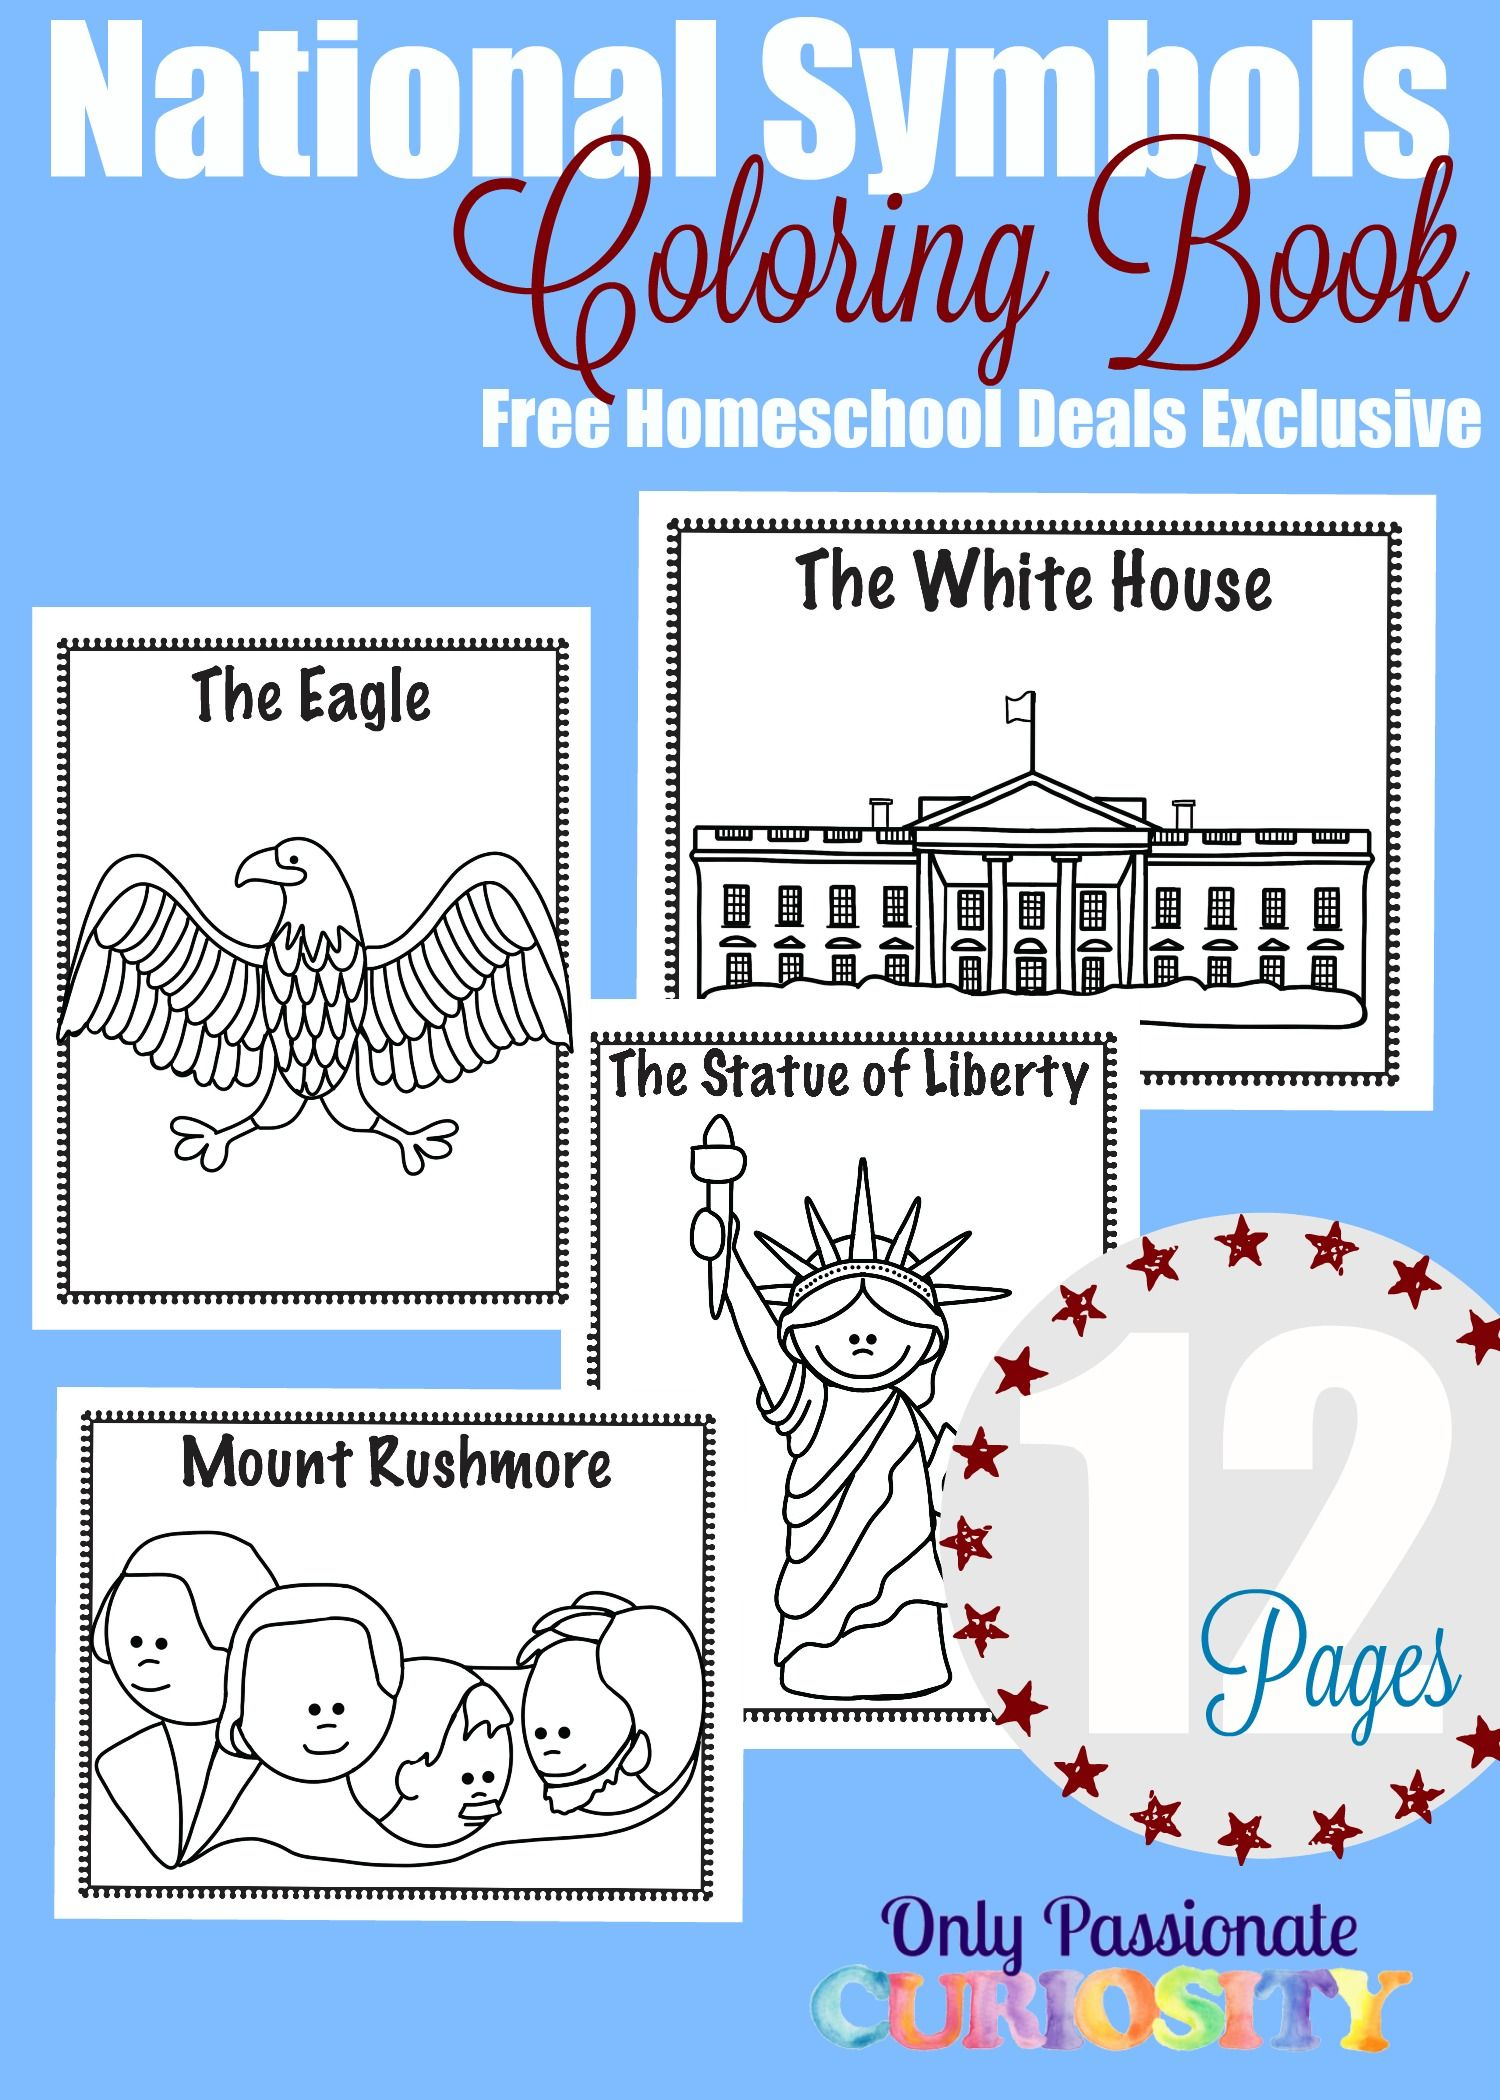 FREE NATIONAL SYMBOLS COLORING BOOK (Instant Download)